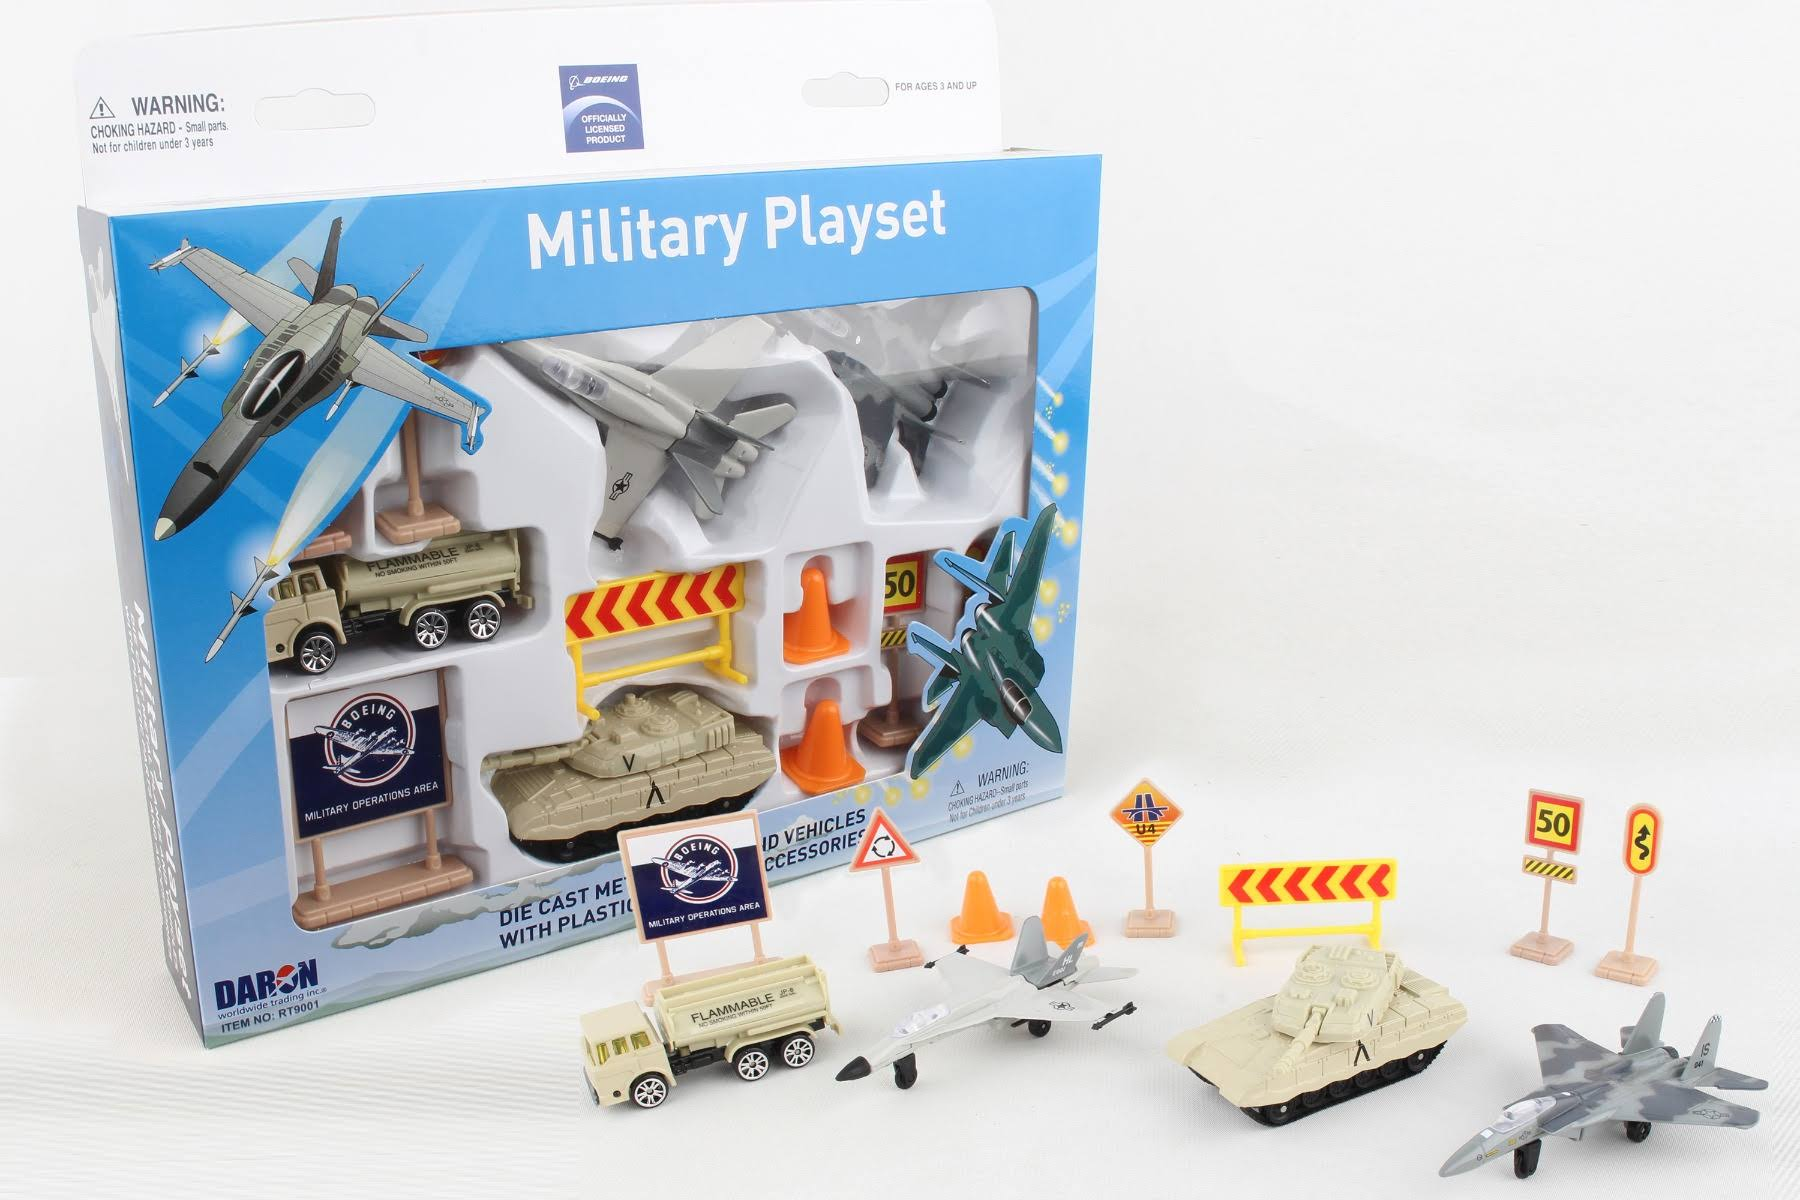 Daron RT9001 Boeing Military Playset